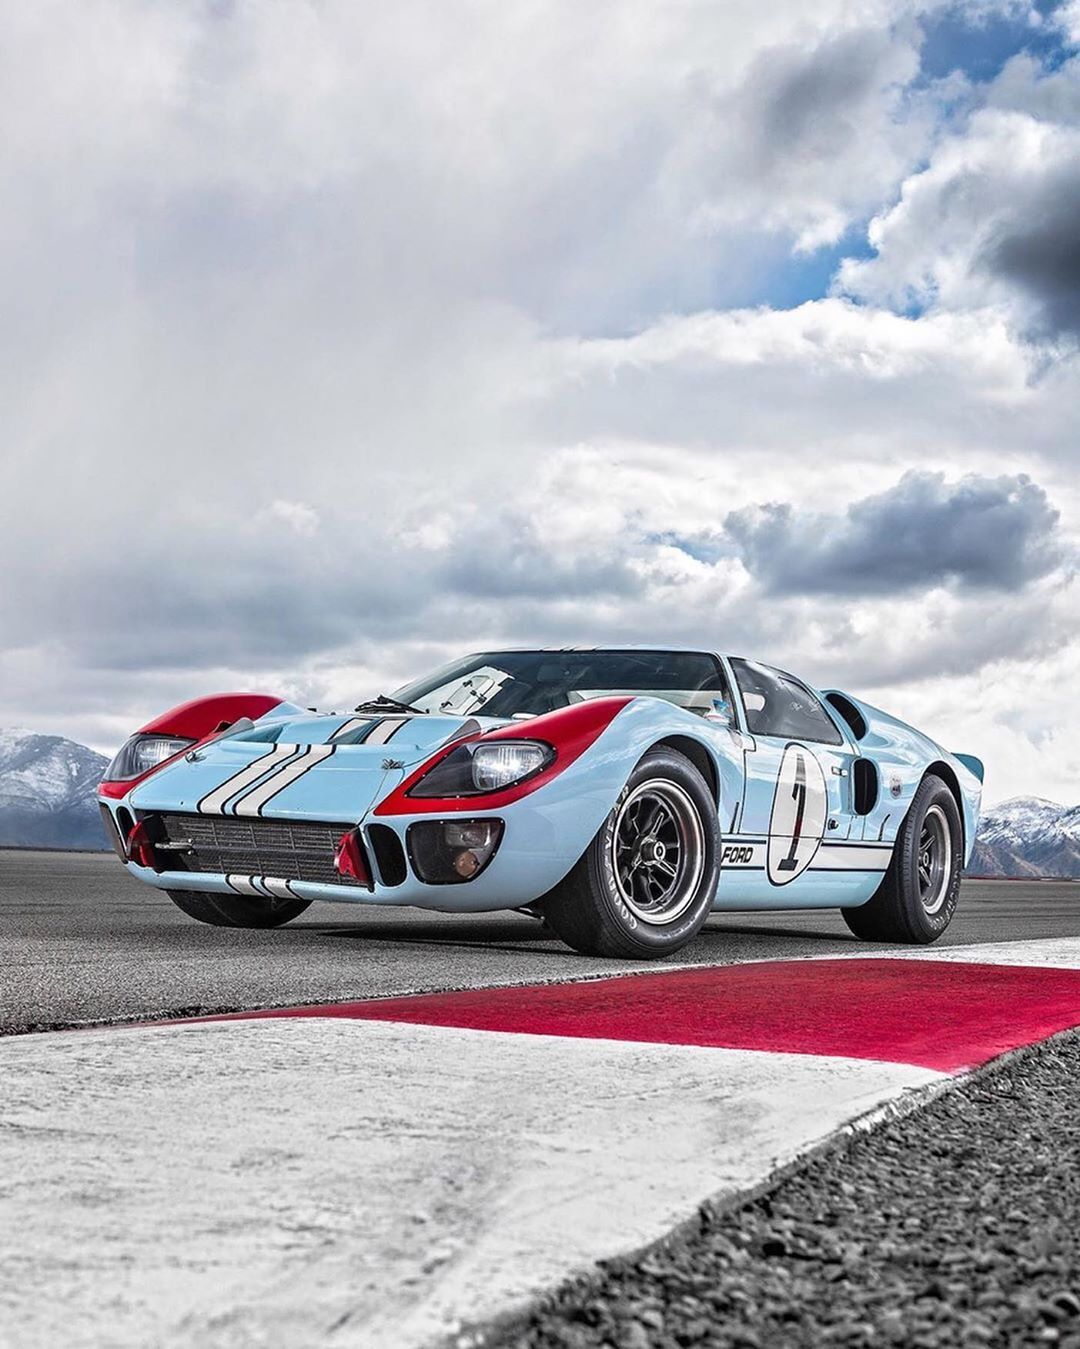 Pin By Sal Weinert On Ford Gt 40 In 2020 Ford Gt40 Ford Gt Super Cars